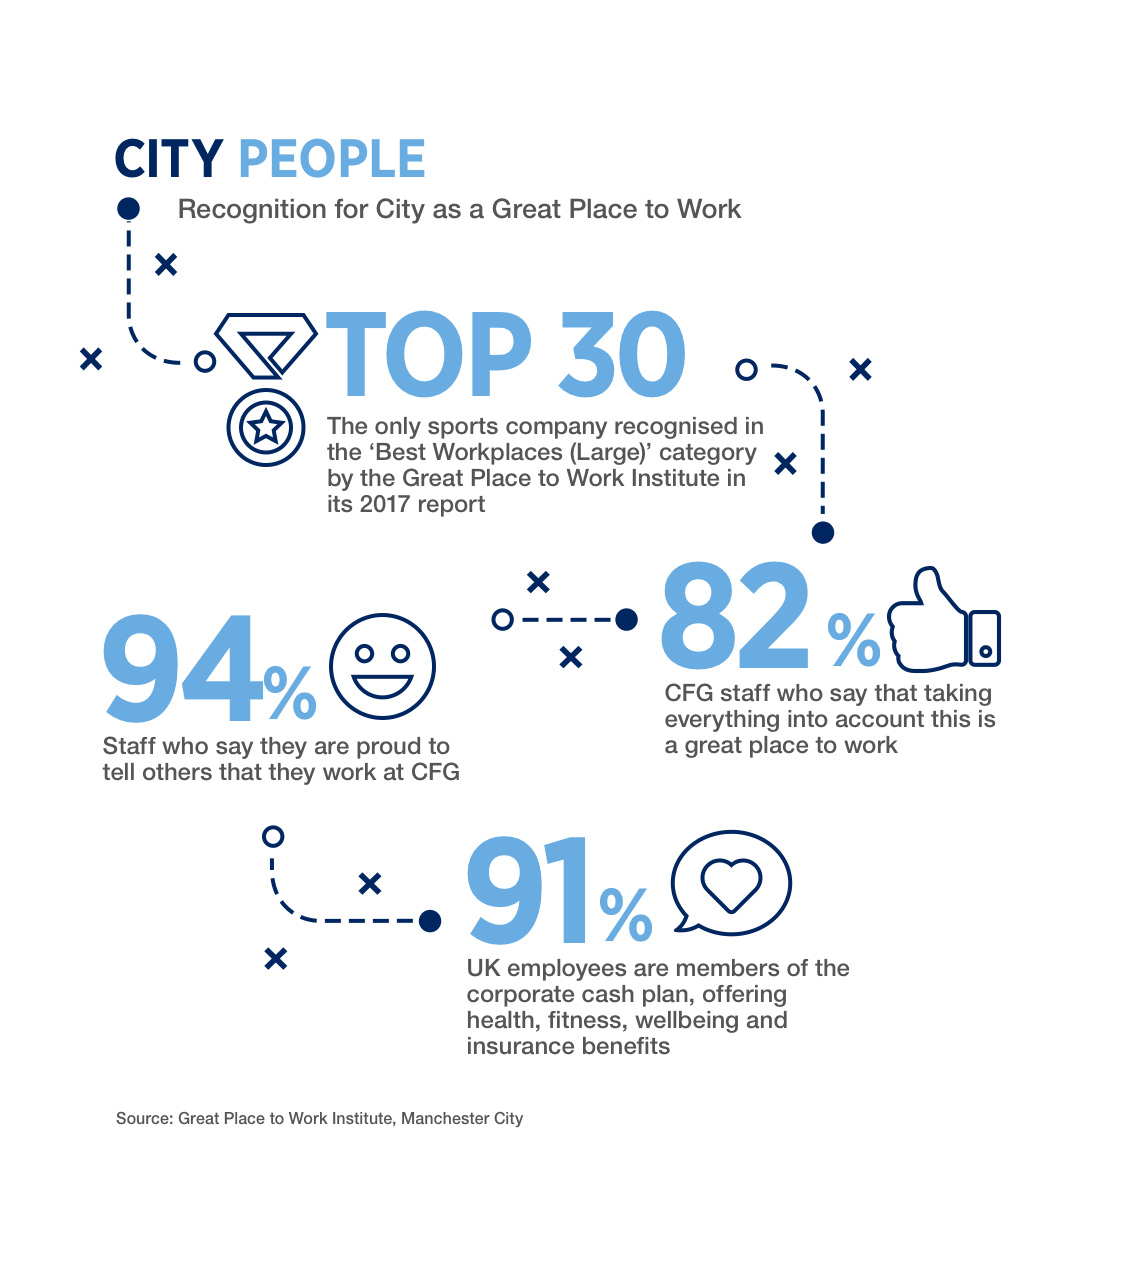 Recognition for City as a Great Place to Work